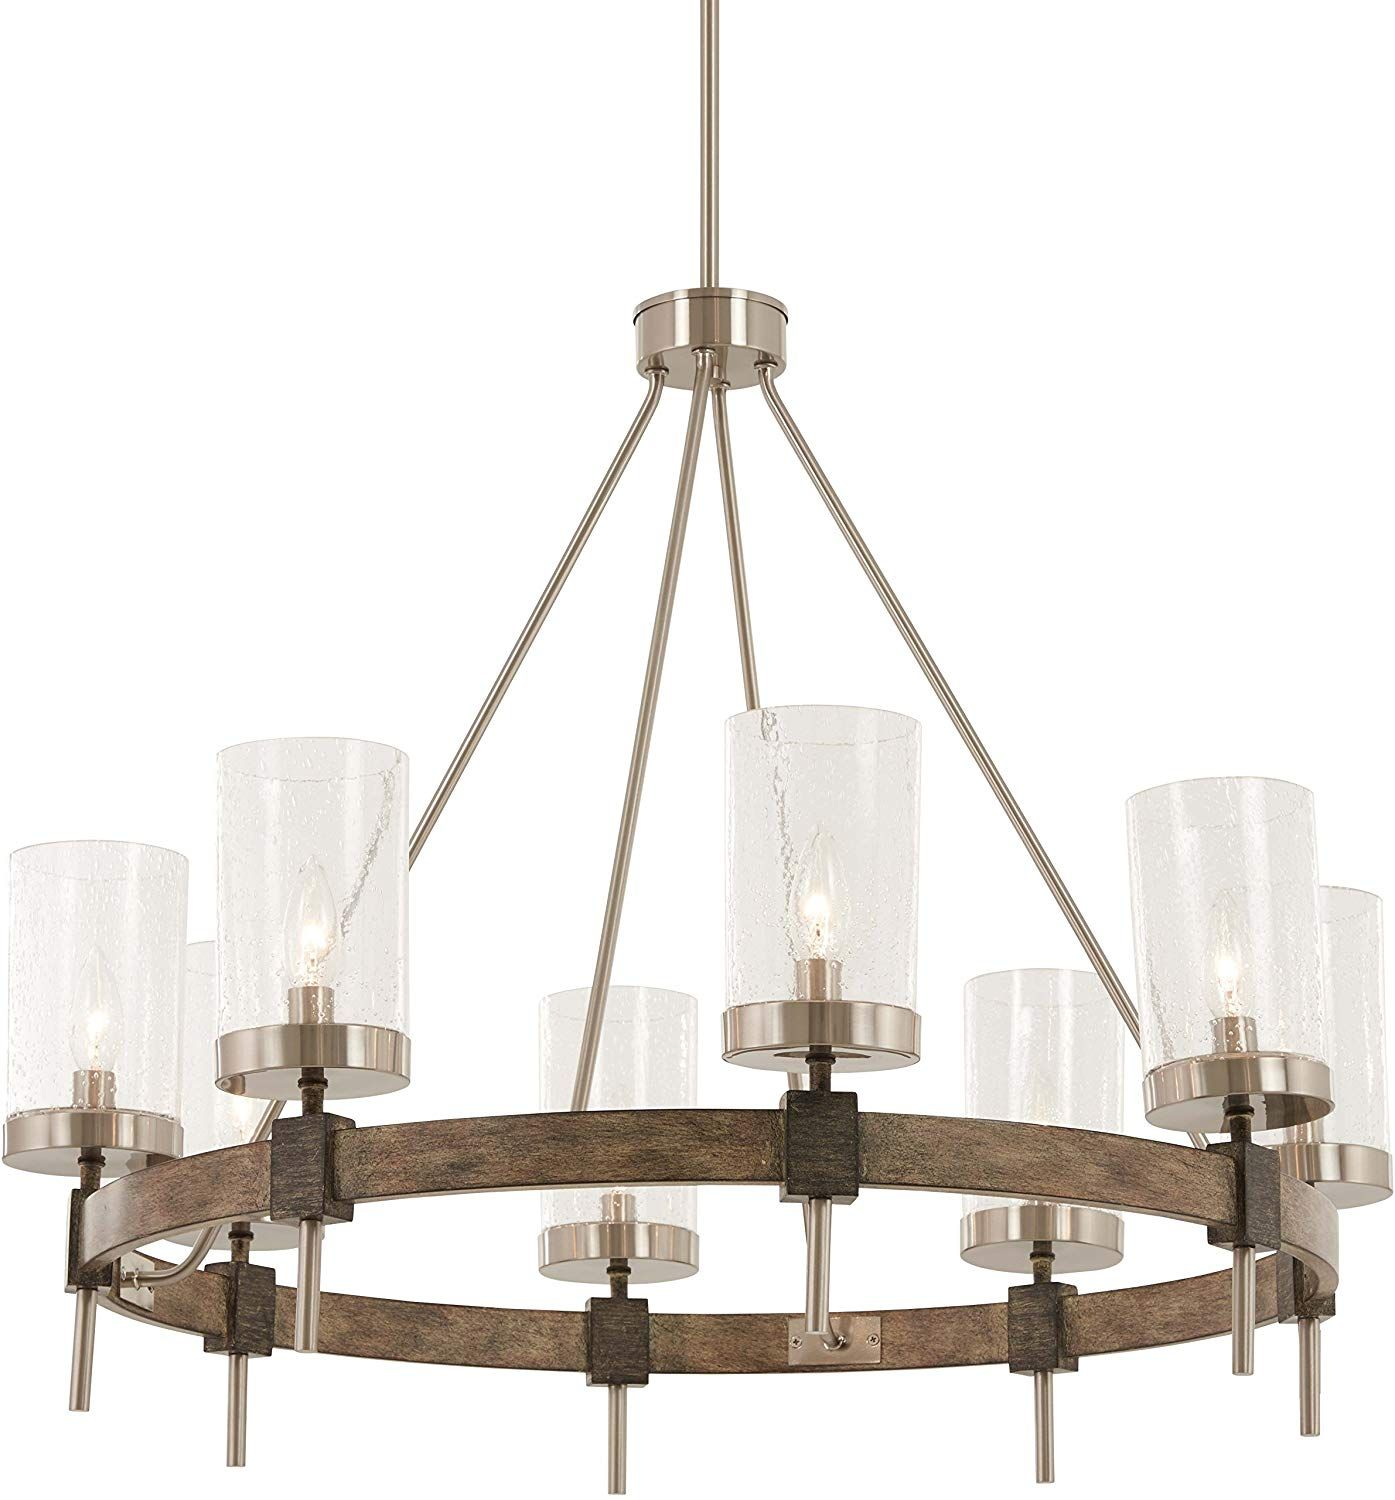 Minka Lavery 4638 106 Bridlewood Chandelier 8 Light 480 Total